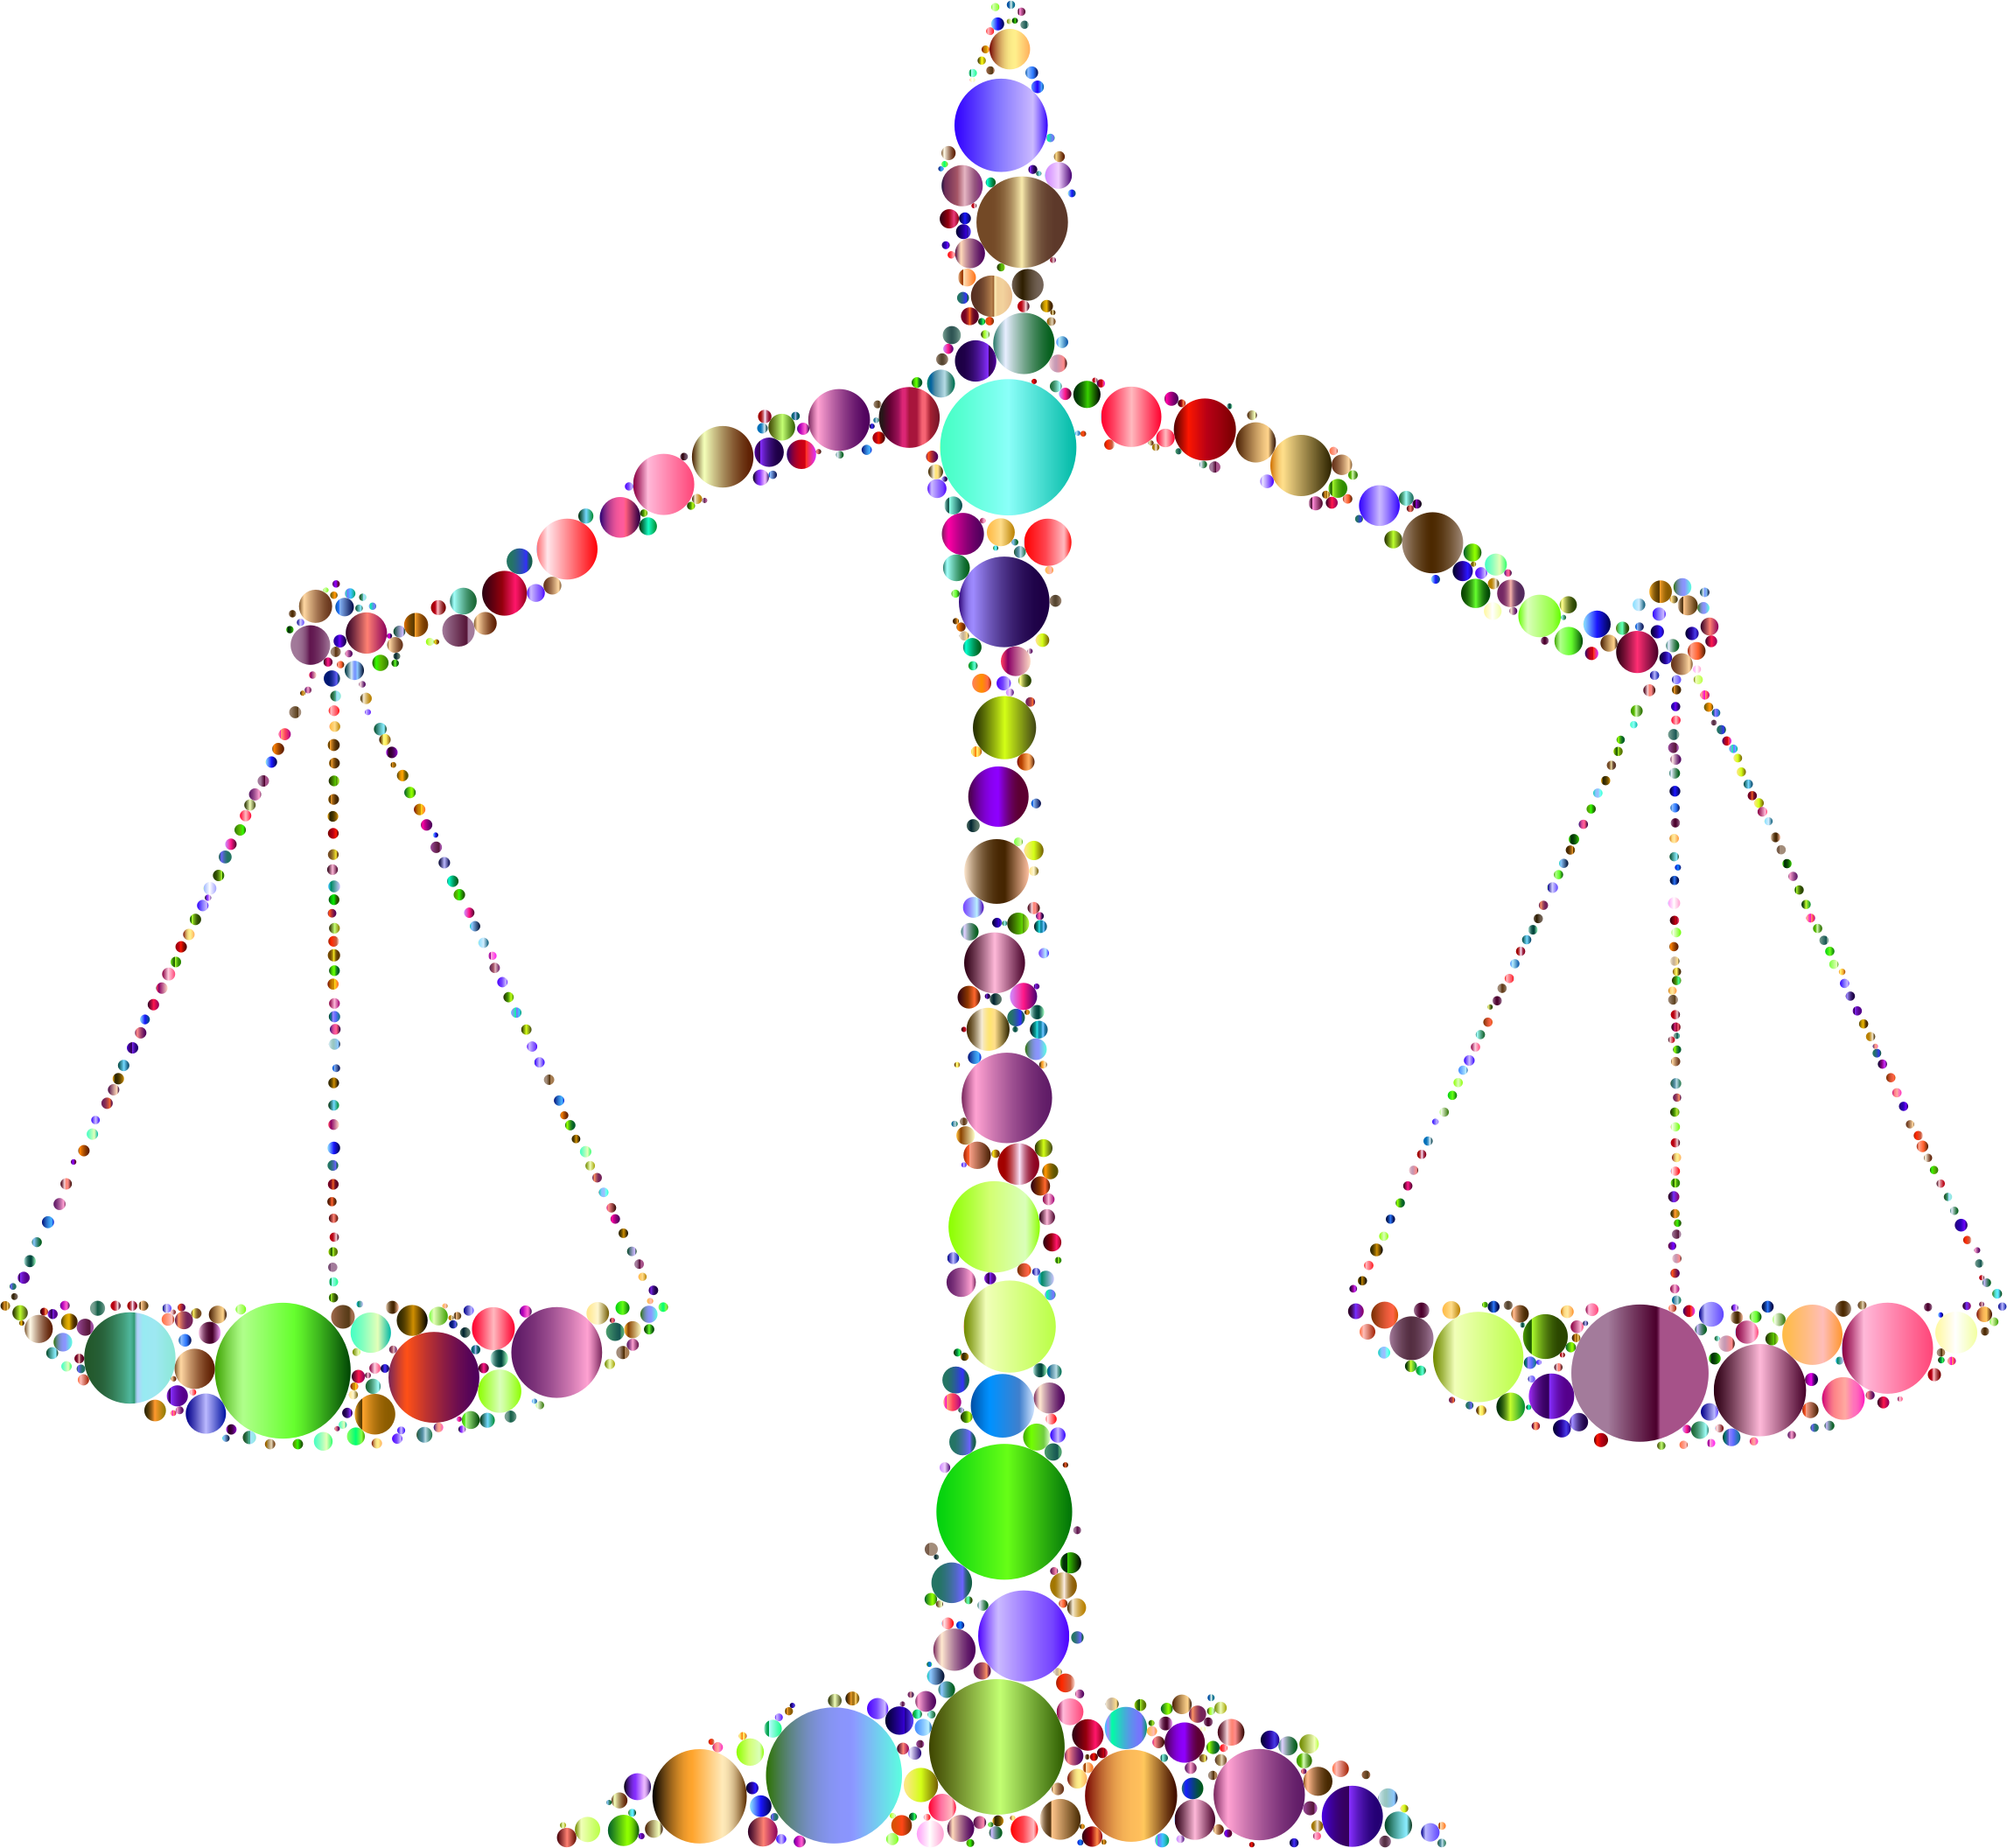 Prismatic Justice Scales Circles 3 by GDJ